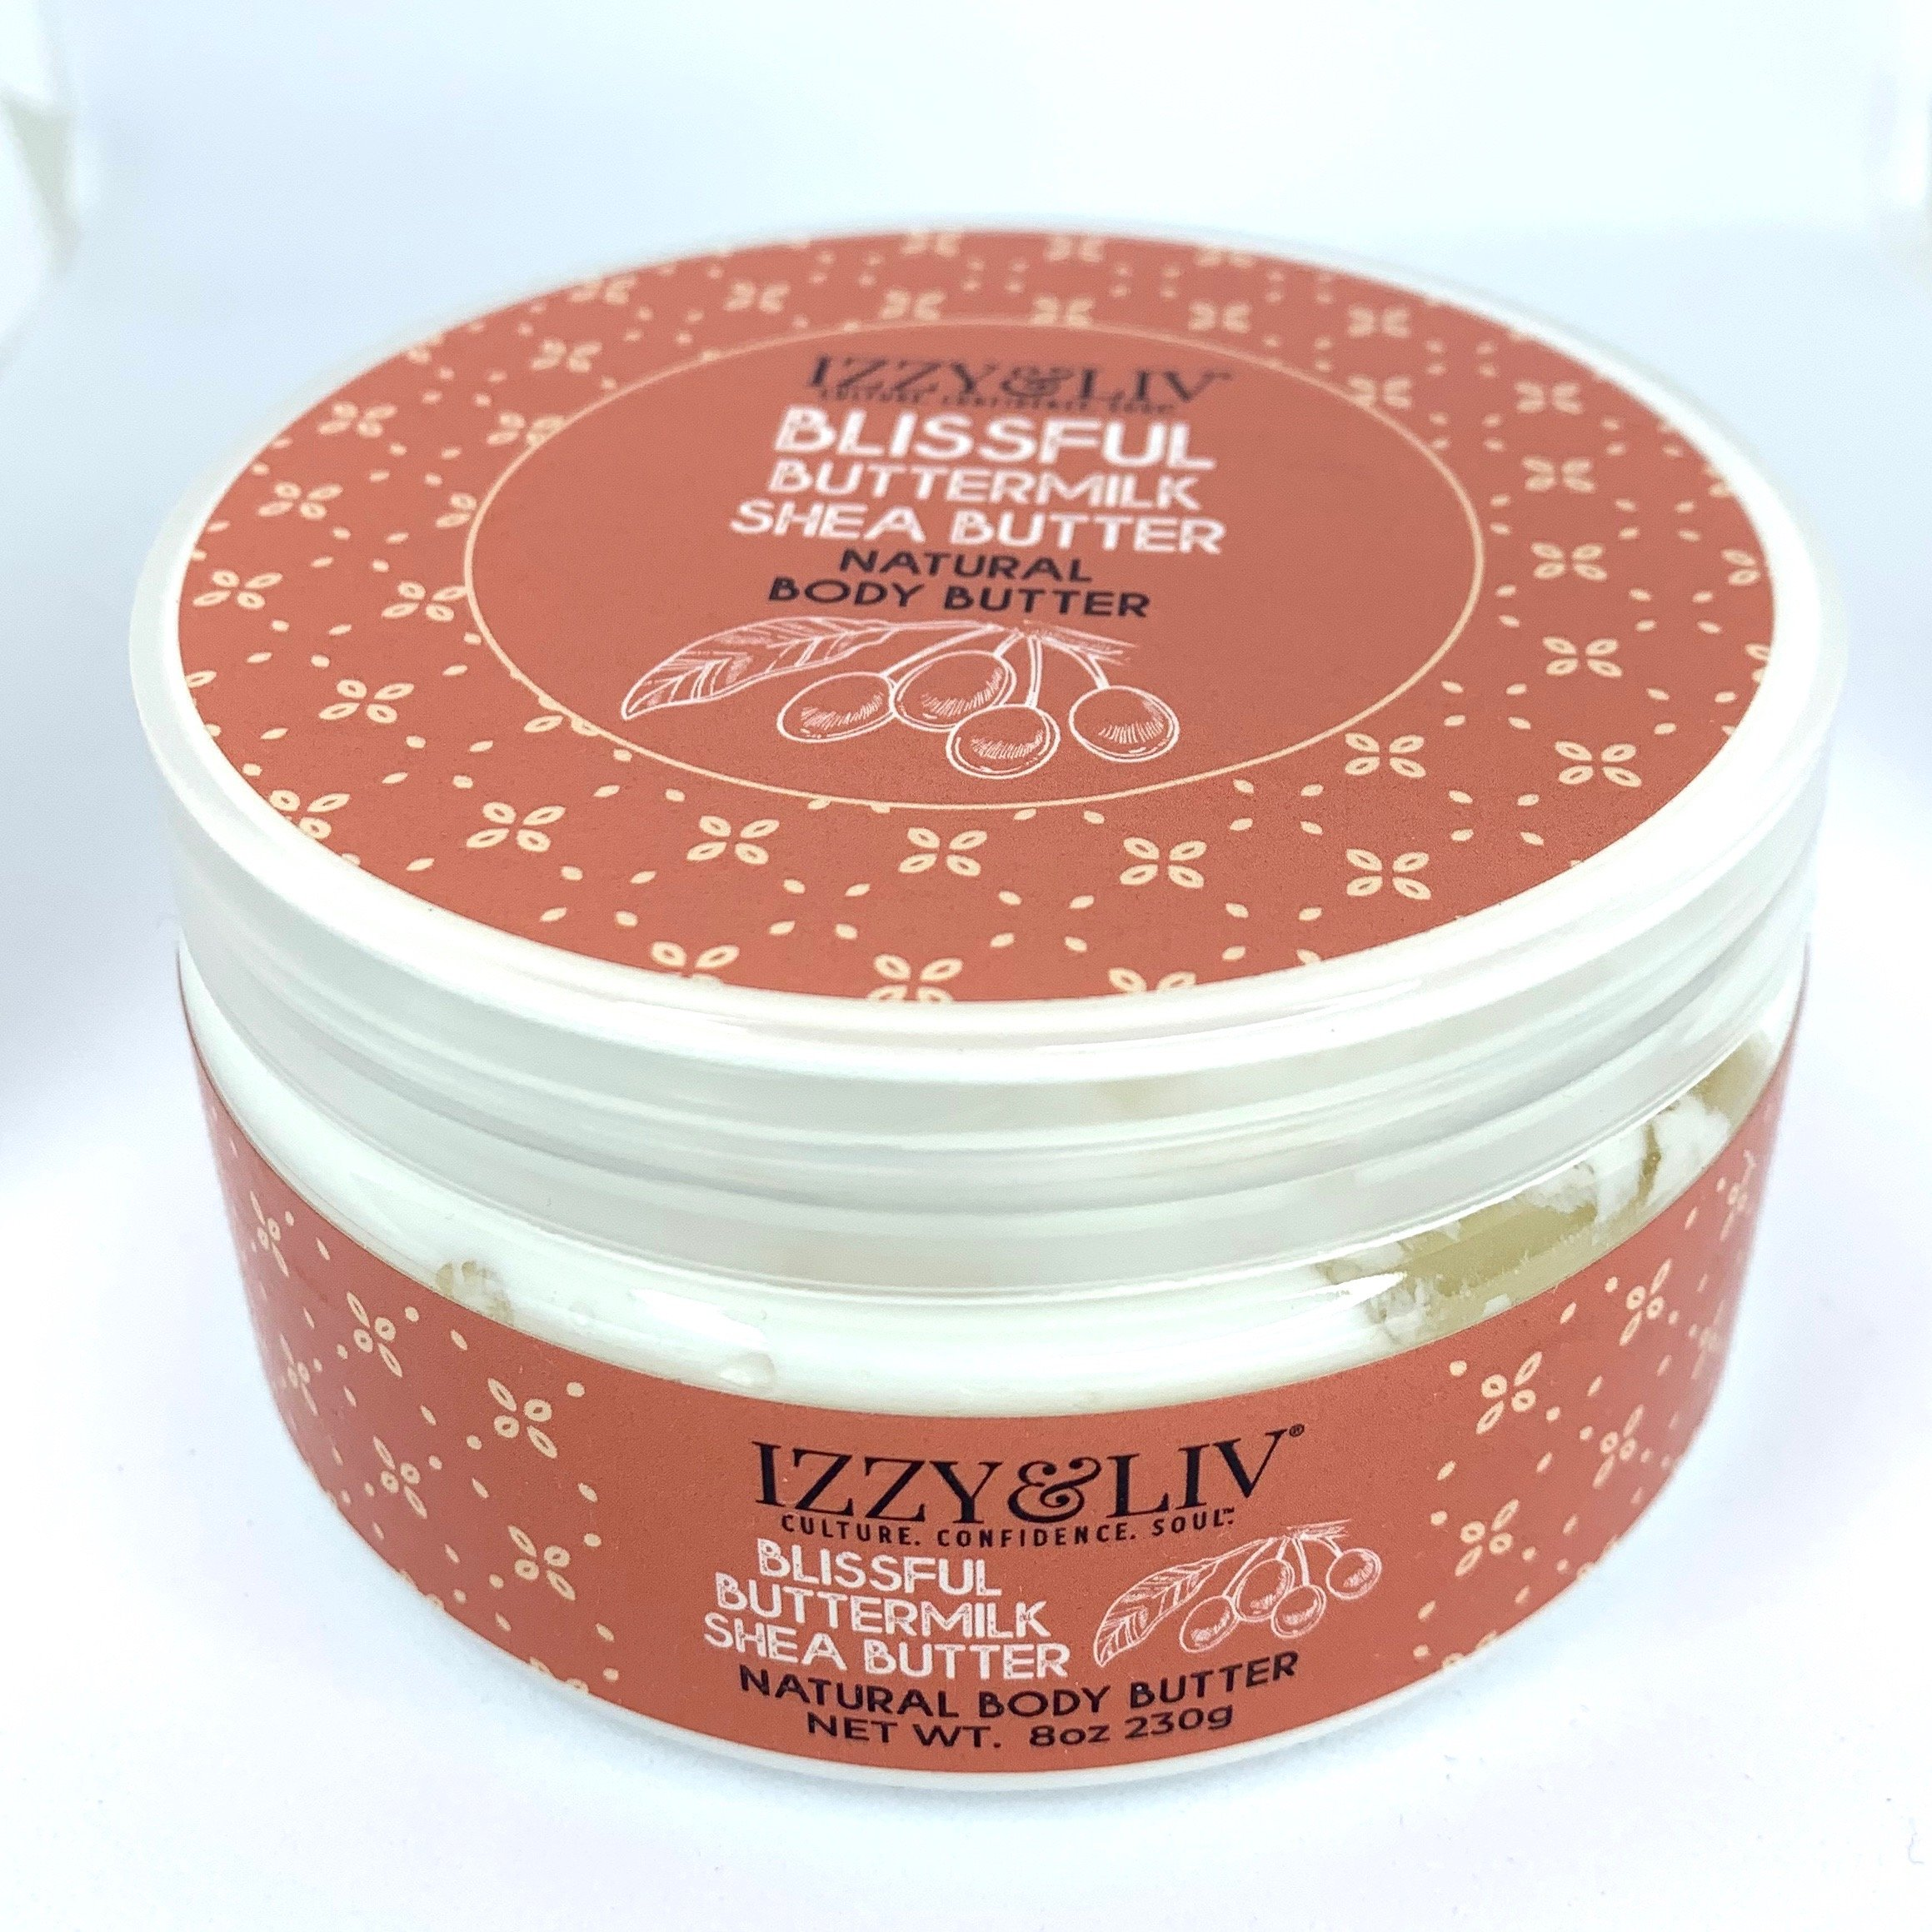 Body Butter Front for Brown Sugar Box May 2020